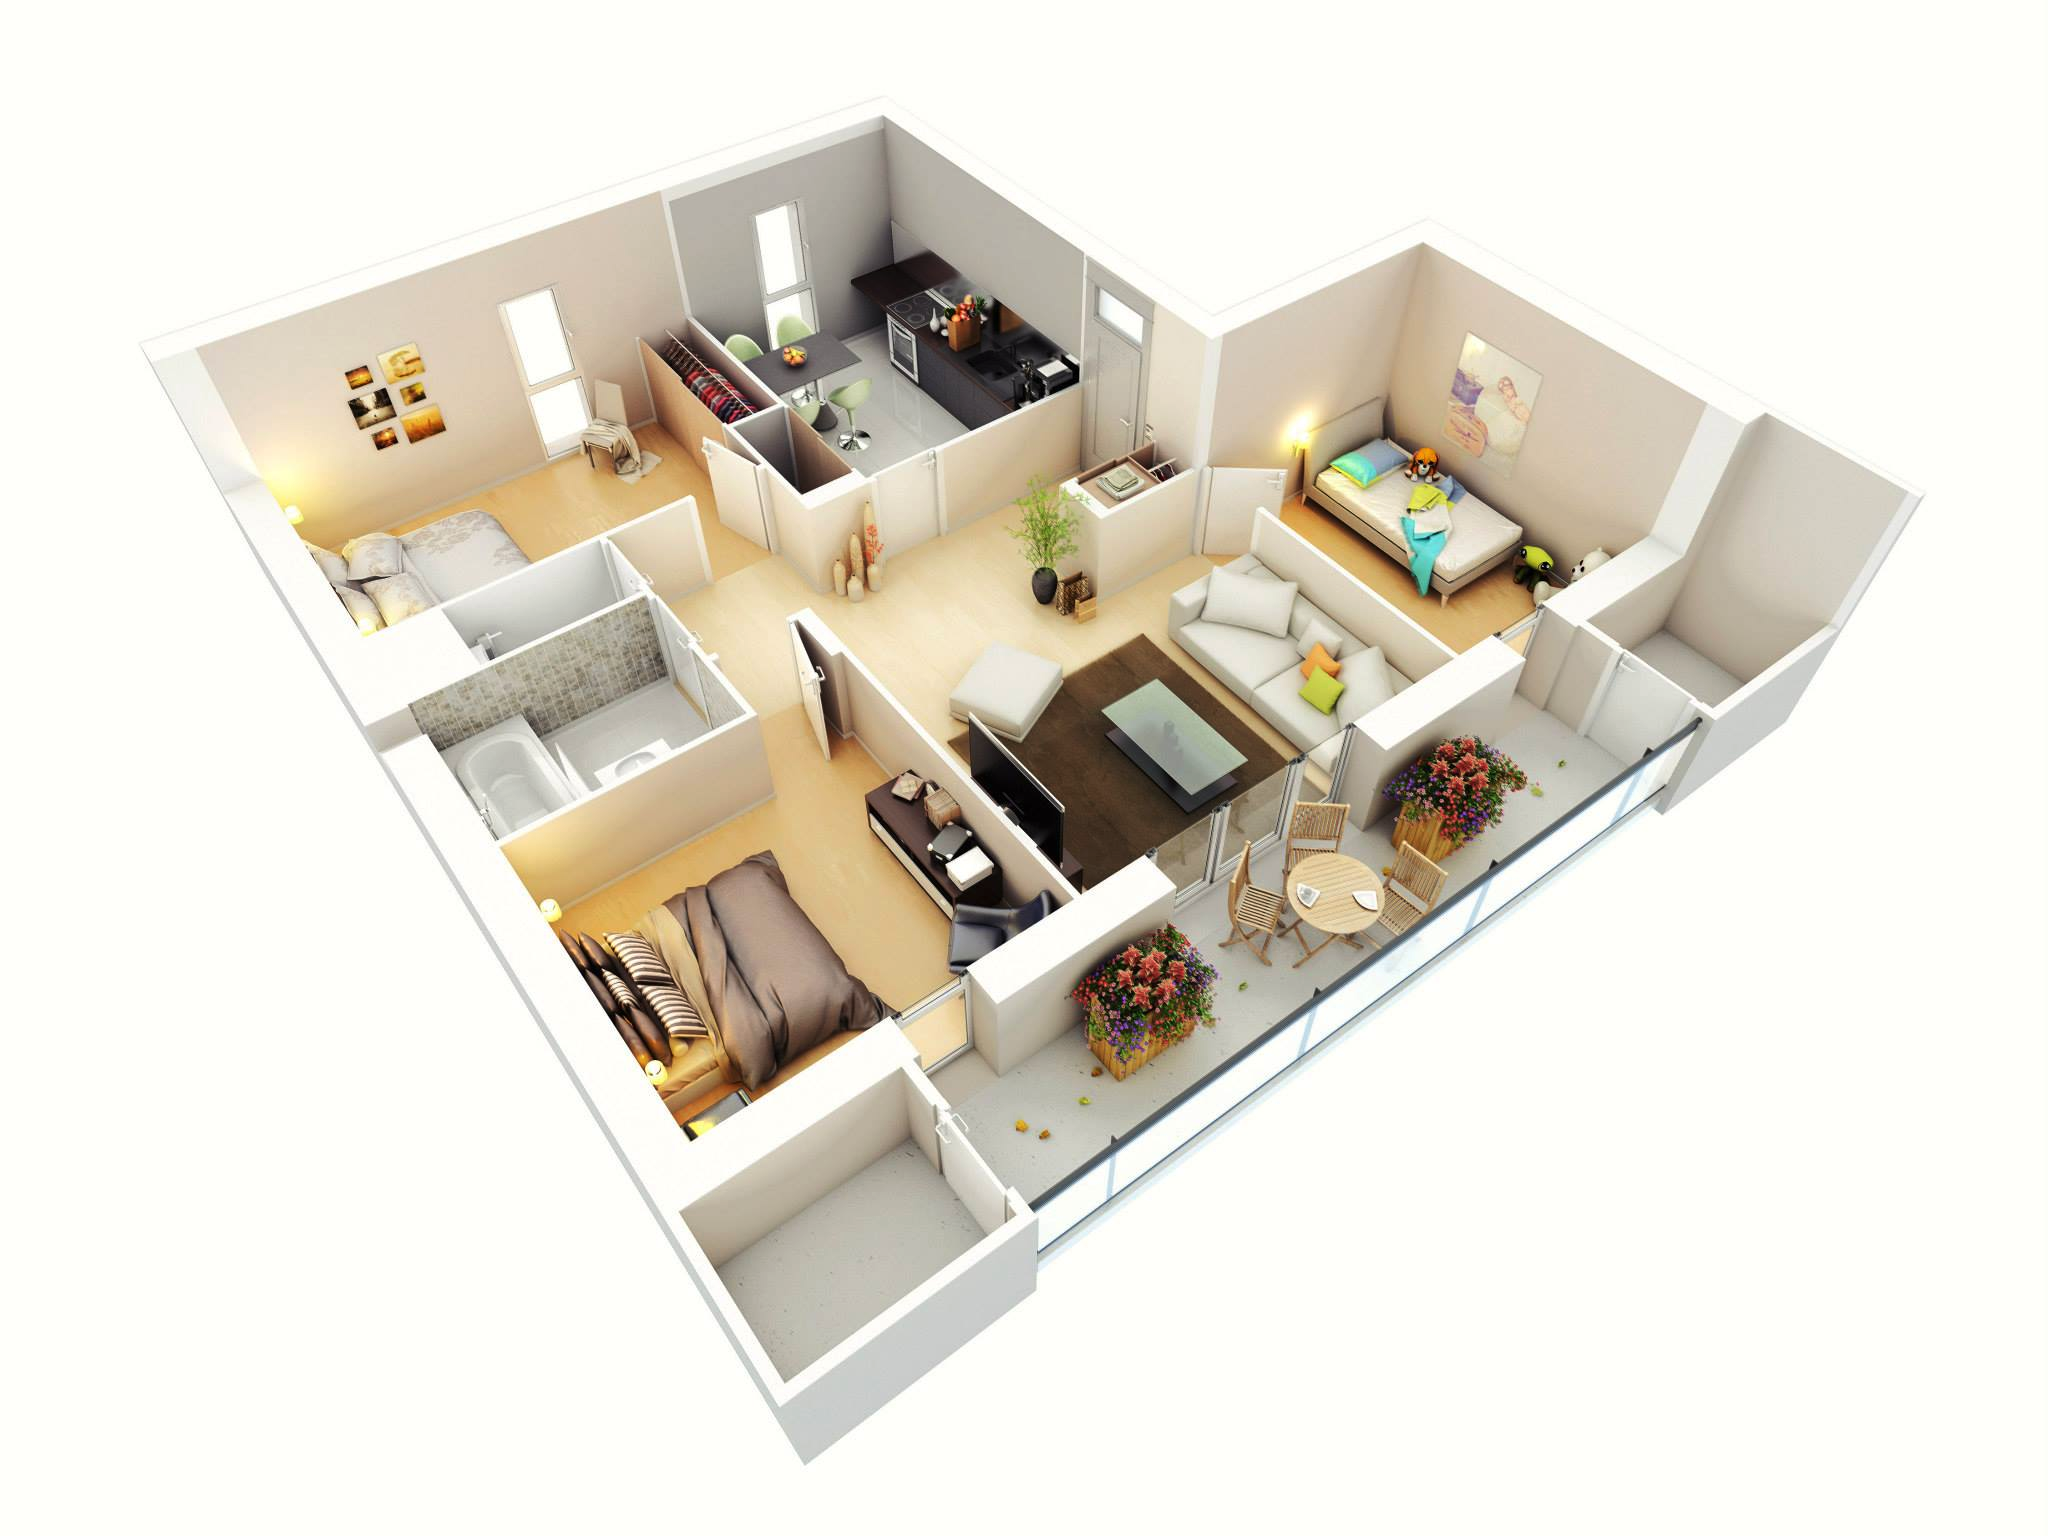 25 more 3 bedroom 3d floor plans - Bedrooms Interior Designs 2